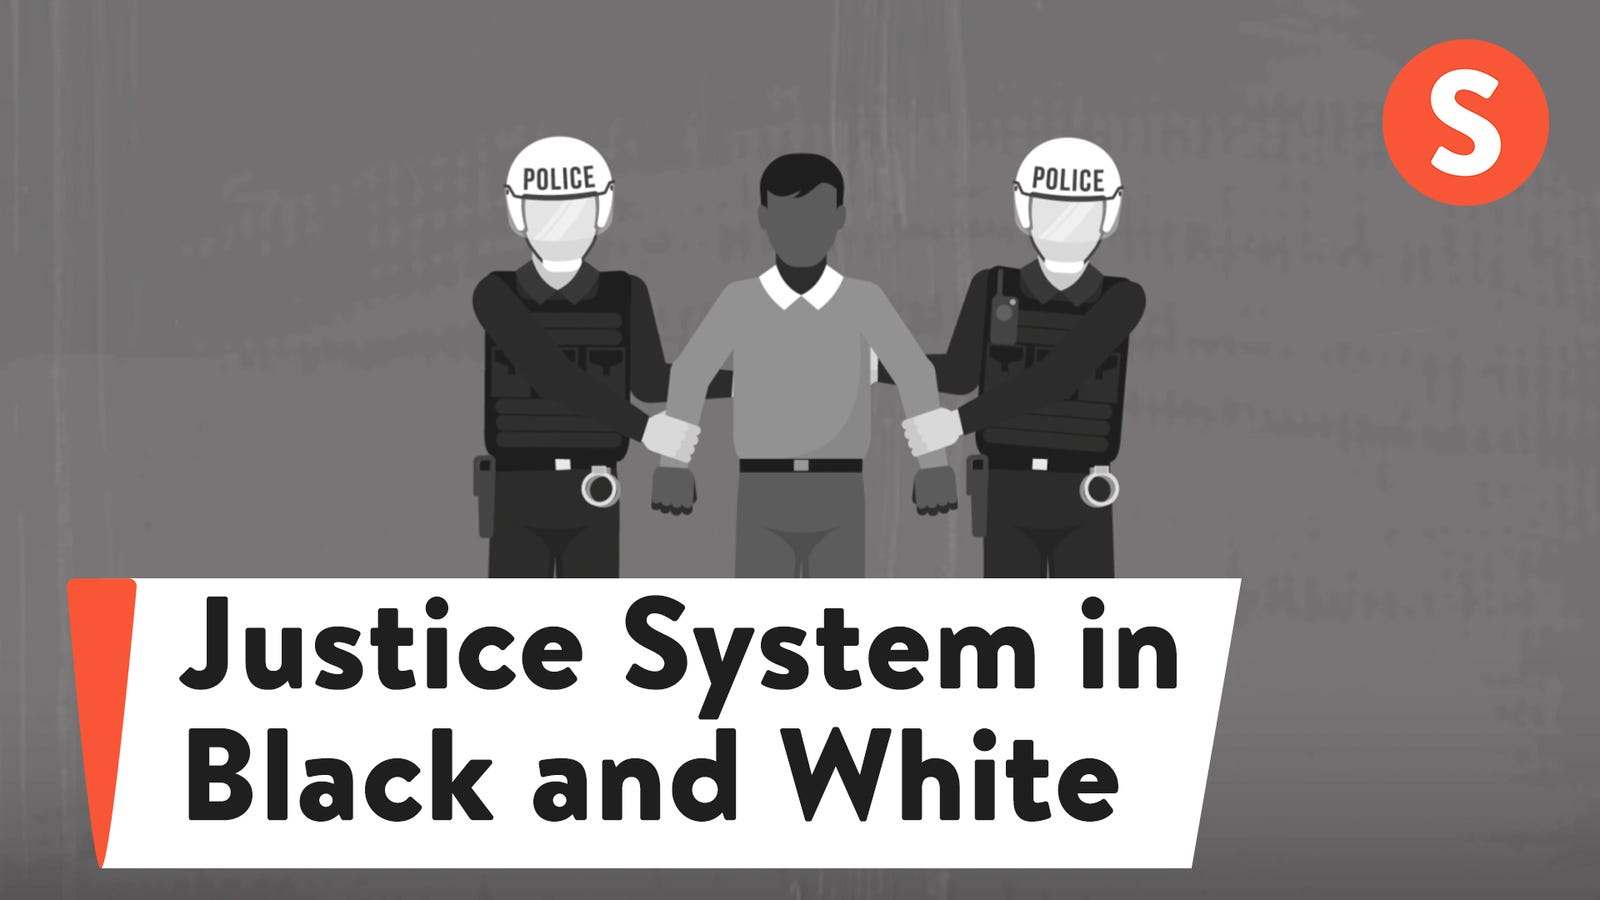 The Criminal Justice System in Black and White